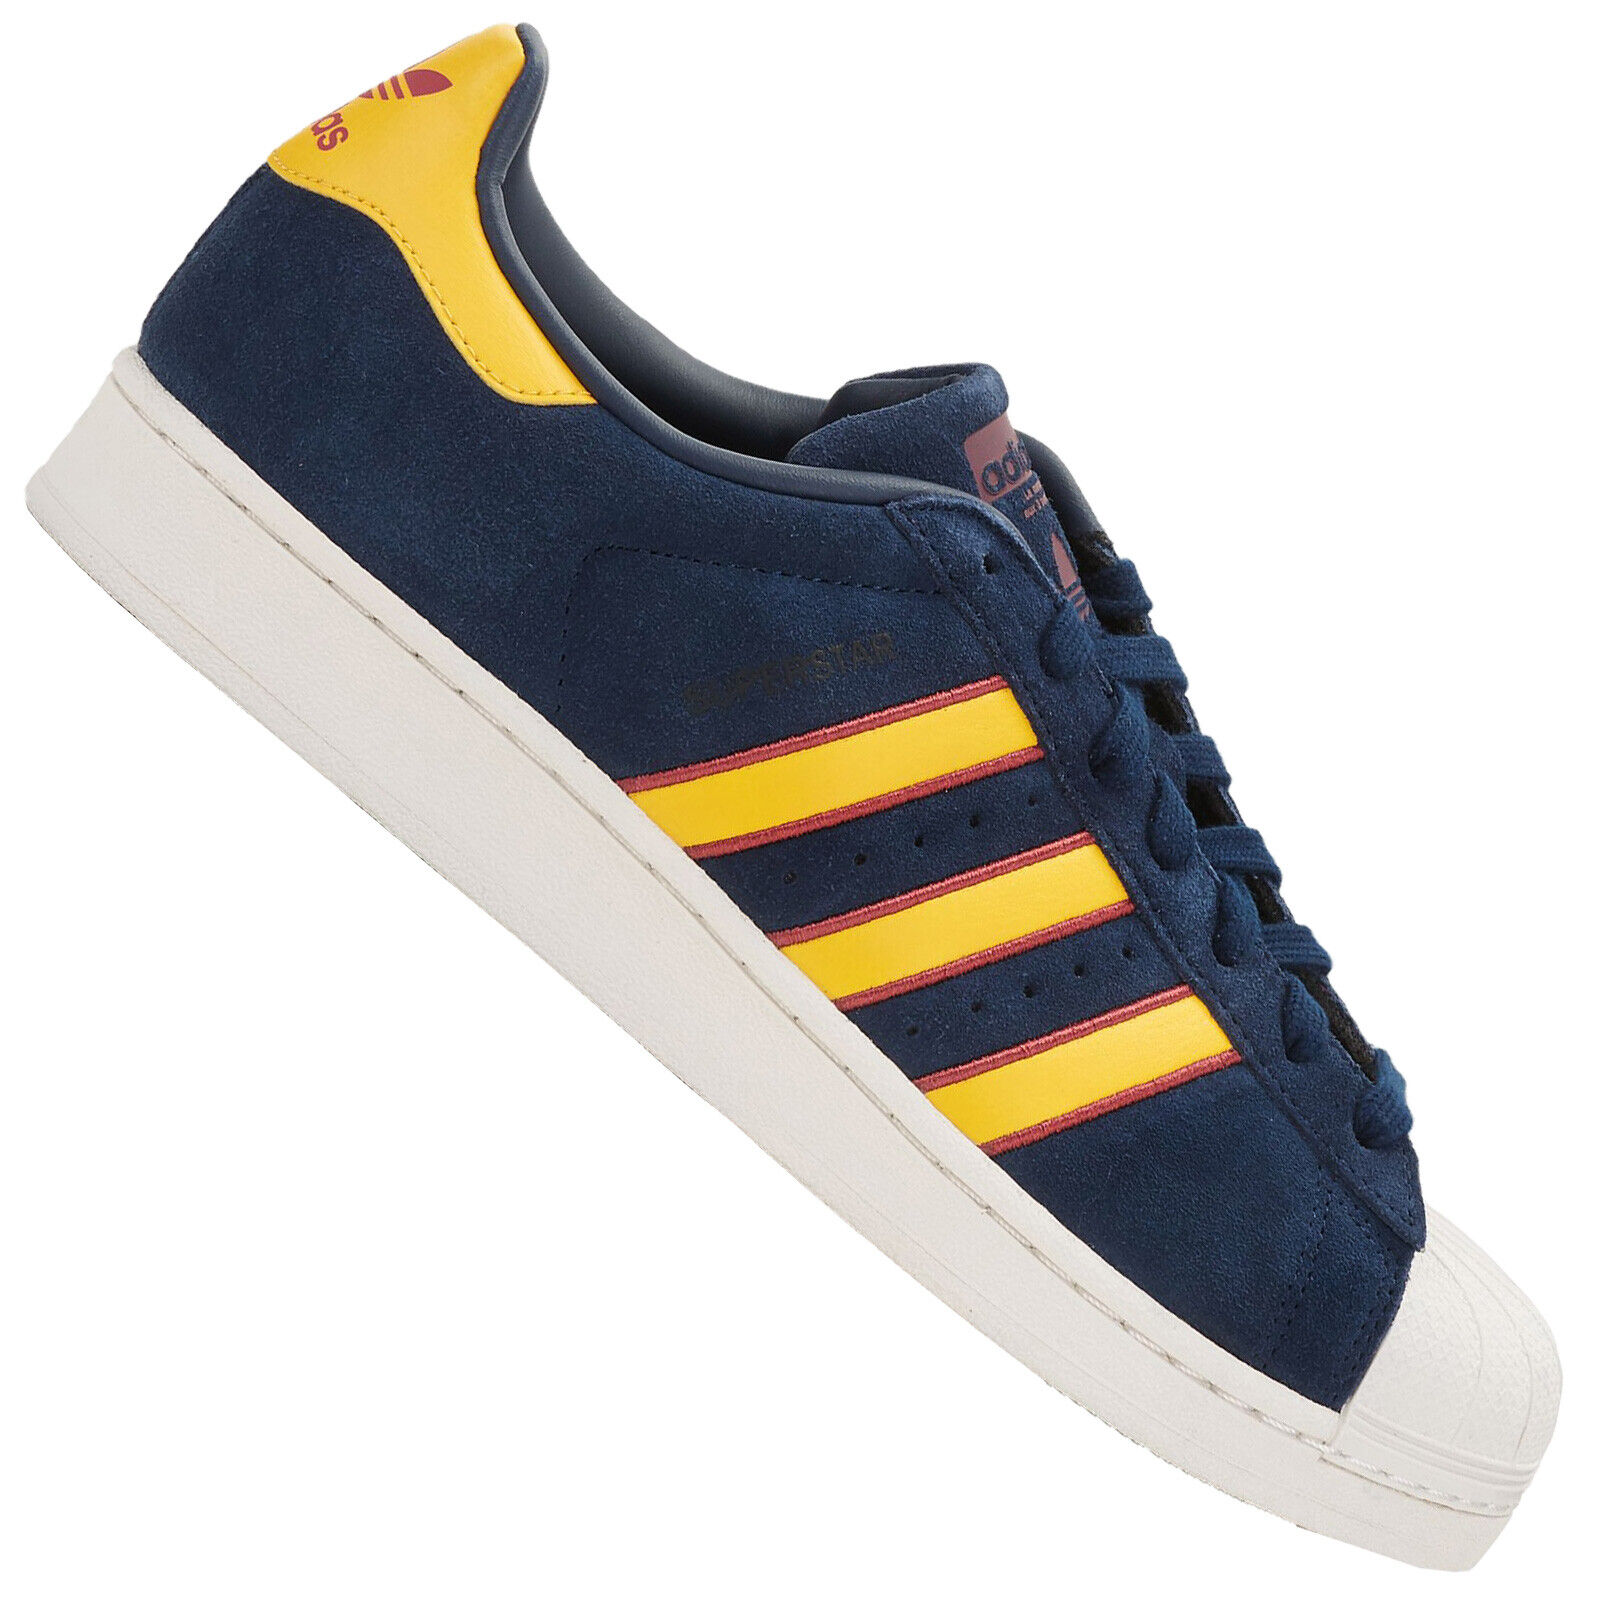 Adidas Superstar shoes Retro Sneaker Casual Trainers Navy Yellow Red Cm8080